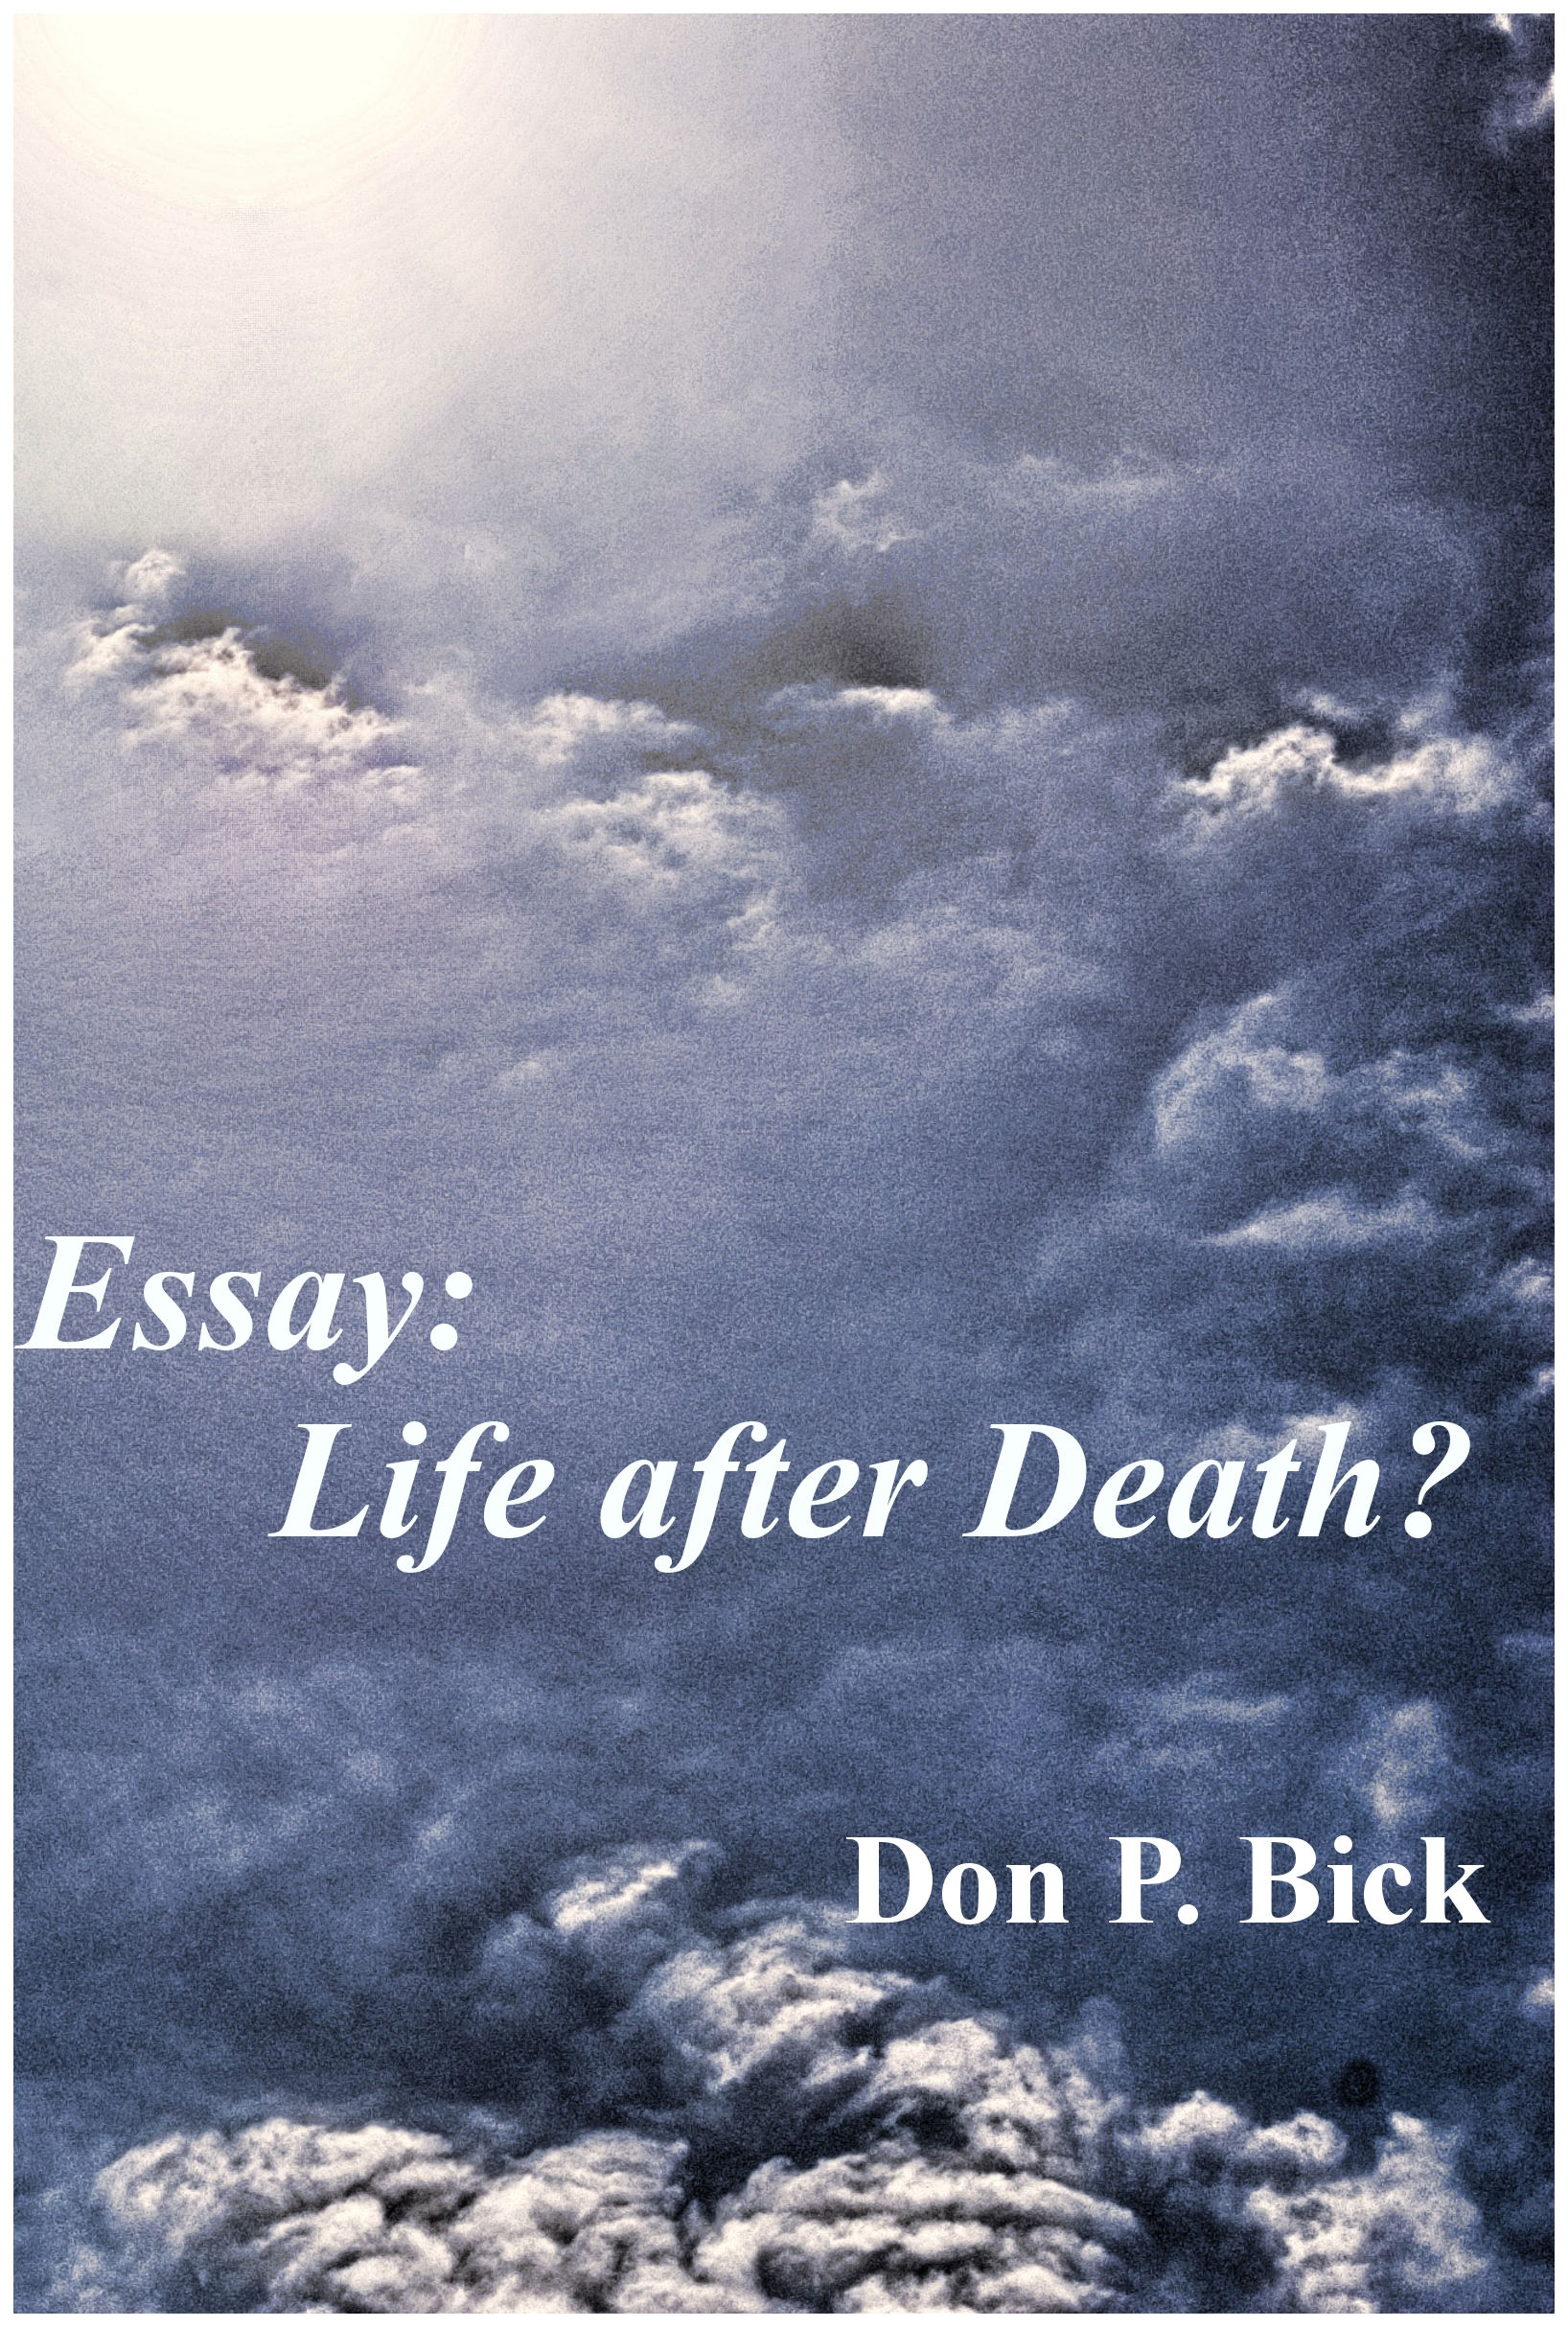 life after death essay paper Life after death limited time offer at lots of essayscom we have made a special deal with a well known professional research paper company to offer you up to 15 professional research papers per month for just $2995.